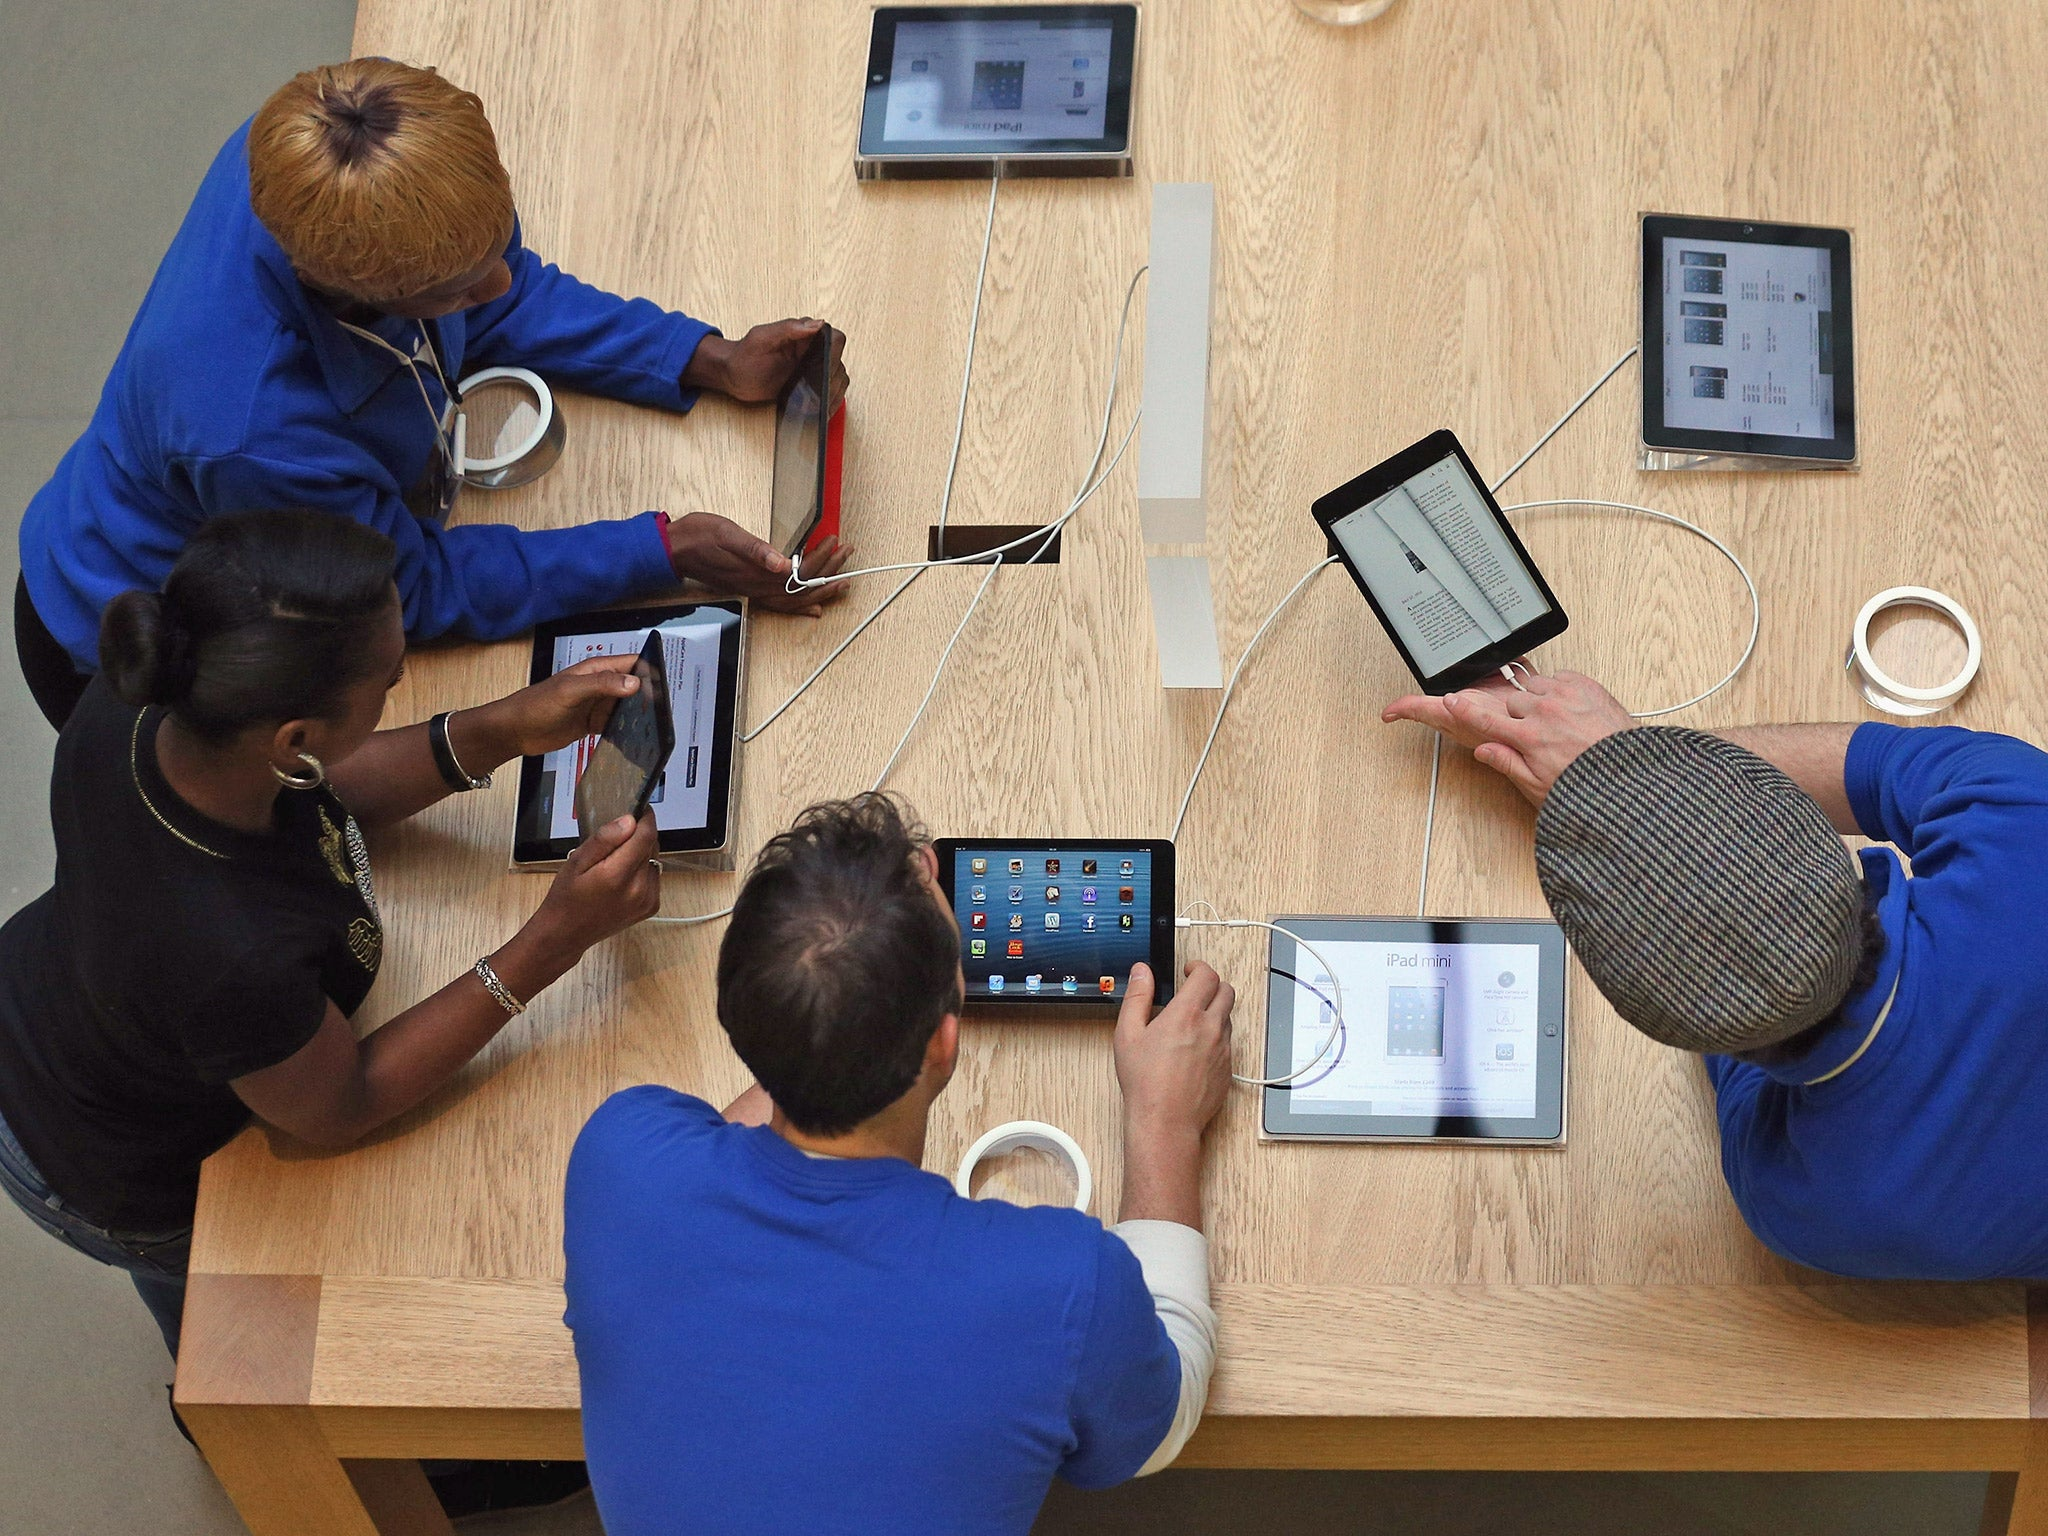 Are Apple Stores going upmarket? Rumours abound after rare interview with Sir Jony Ive